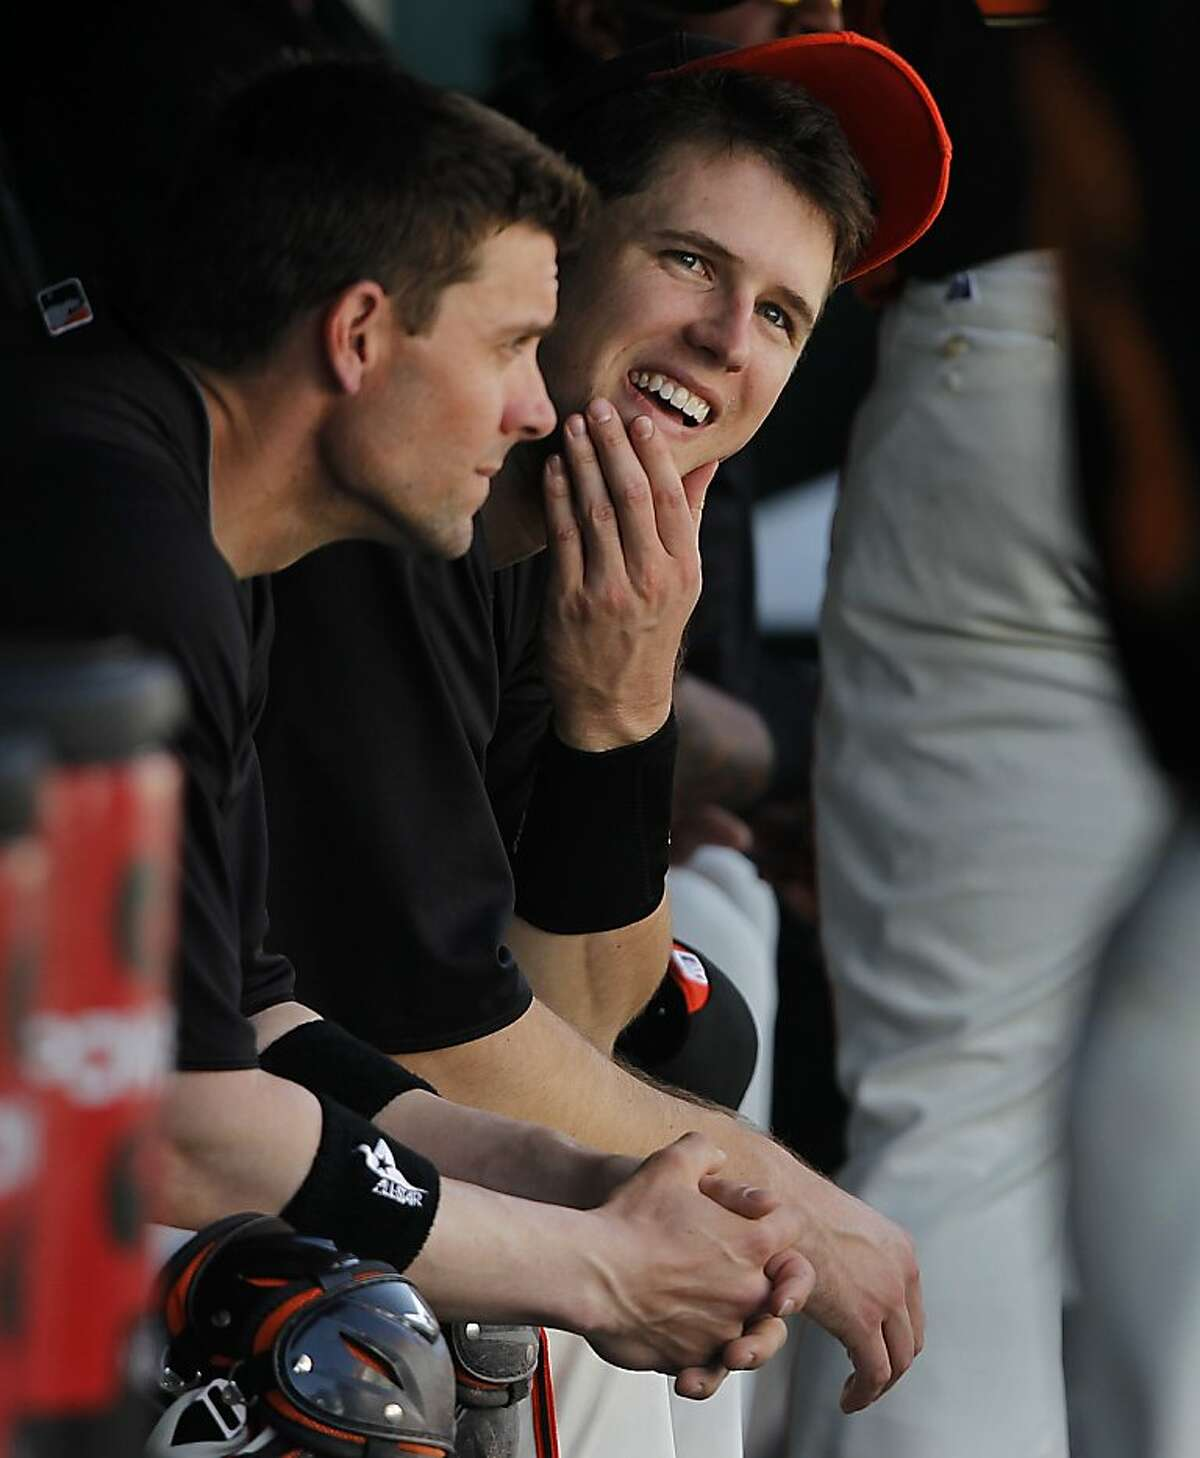 Buster Posey sits with backup catcher Chris Stewart in the dugout during the San Francisco Giants Cactus League spring training game against the Cincinnati Reds in Scottsdale, Ariz. on Friday, March 9, 2012. It was Posey's first game since his season-ending ankle injury last May.